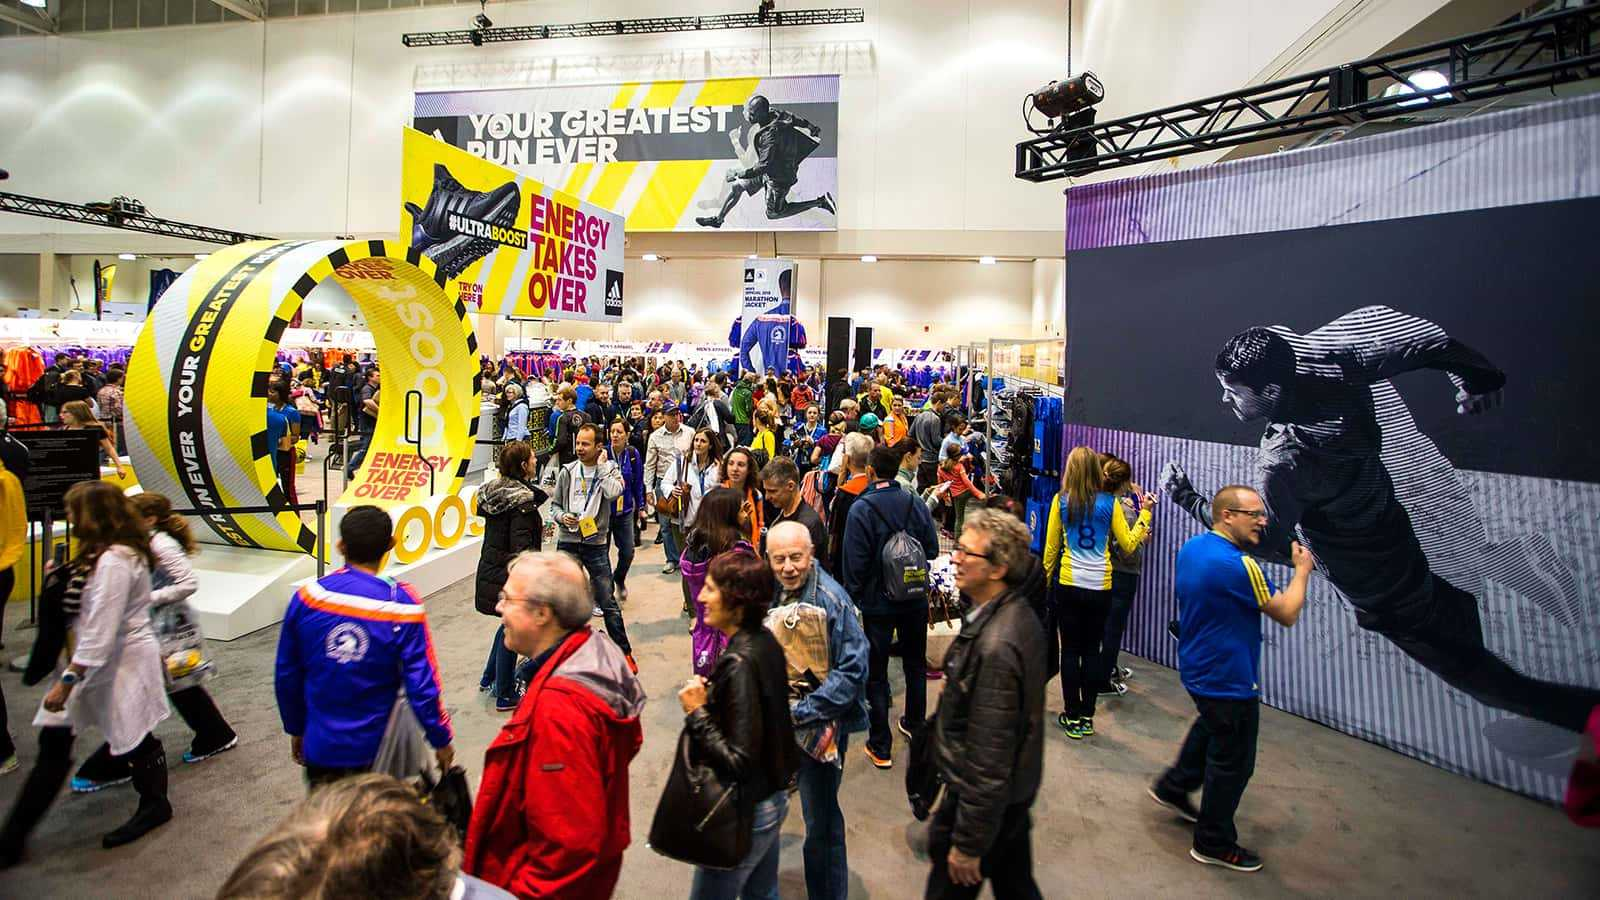 A view of the adidas Boston Marathon store w/ Attendees 2015.